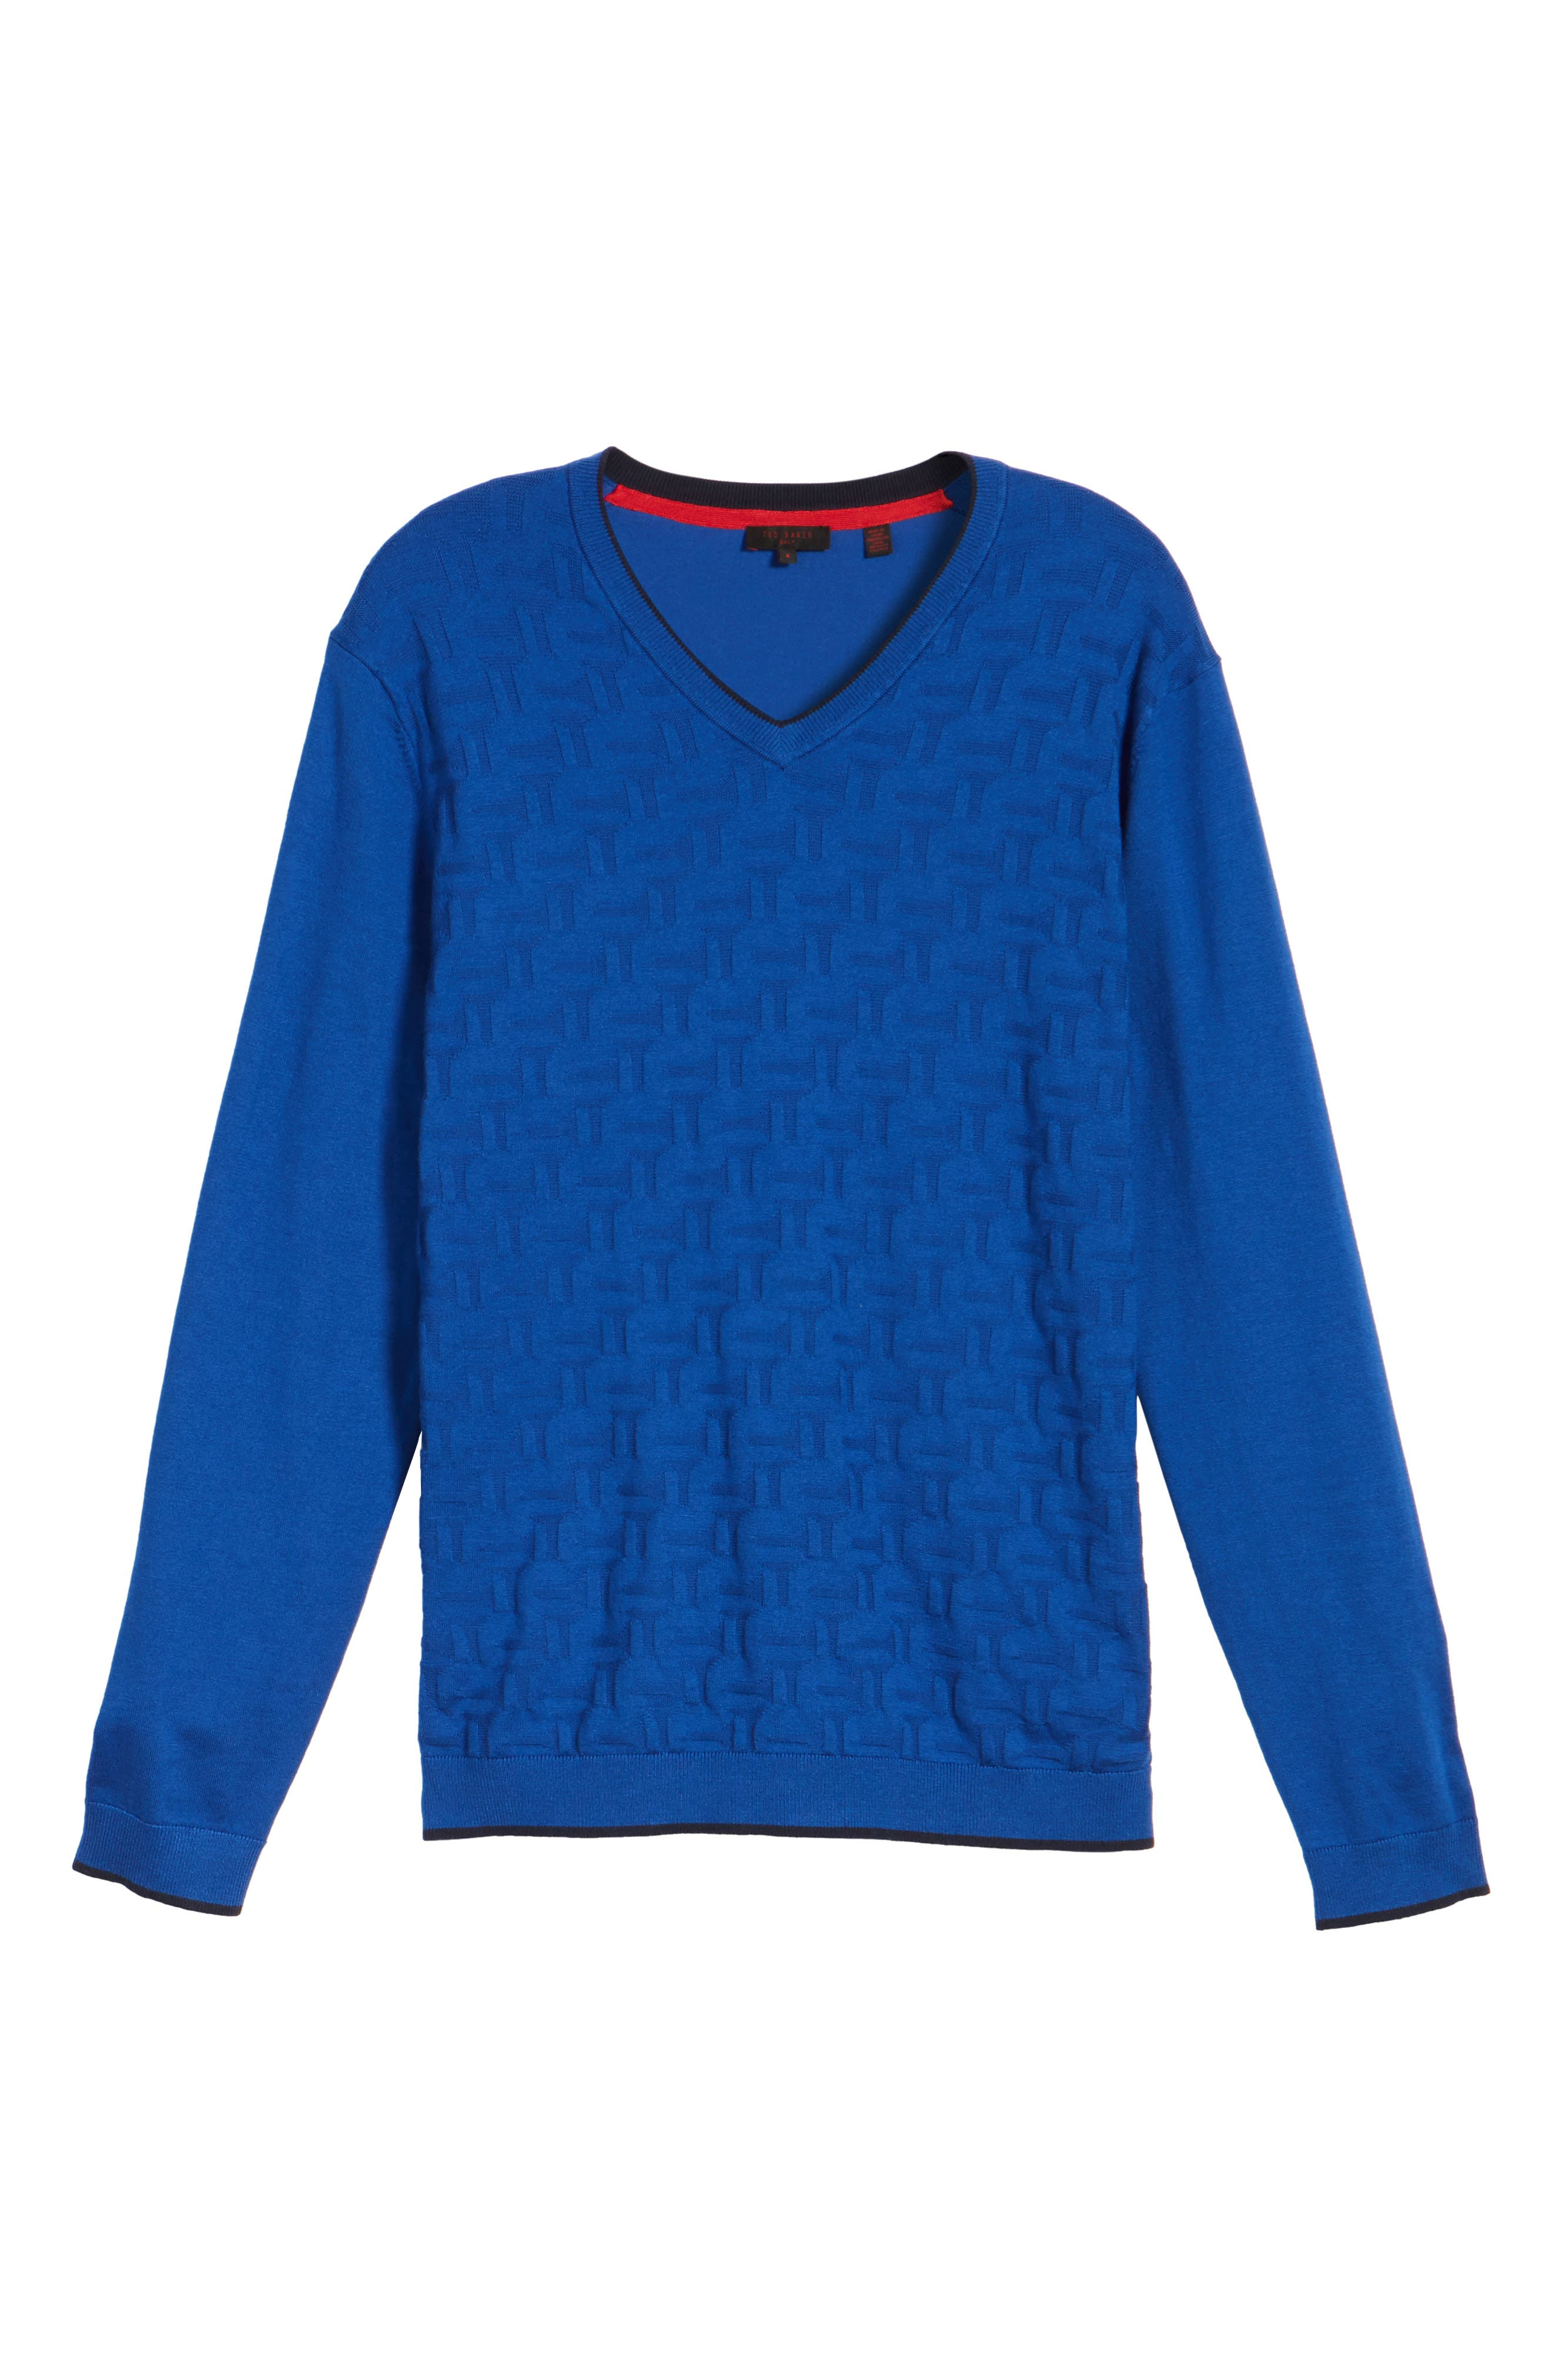 Armstro Tipped Golf Tee Sweater,                             Alternate thumbnail 9, color,                             Blue